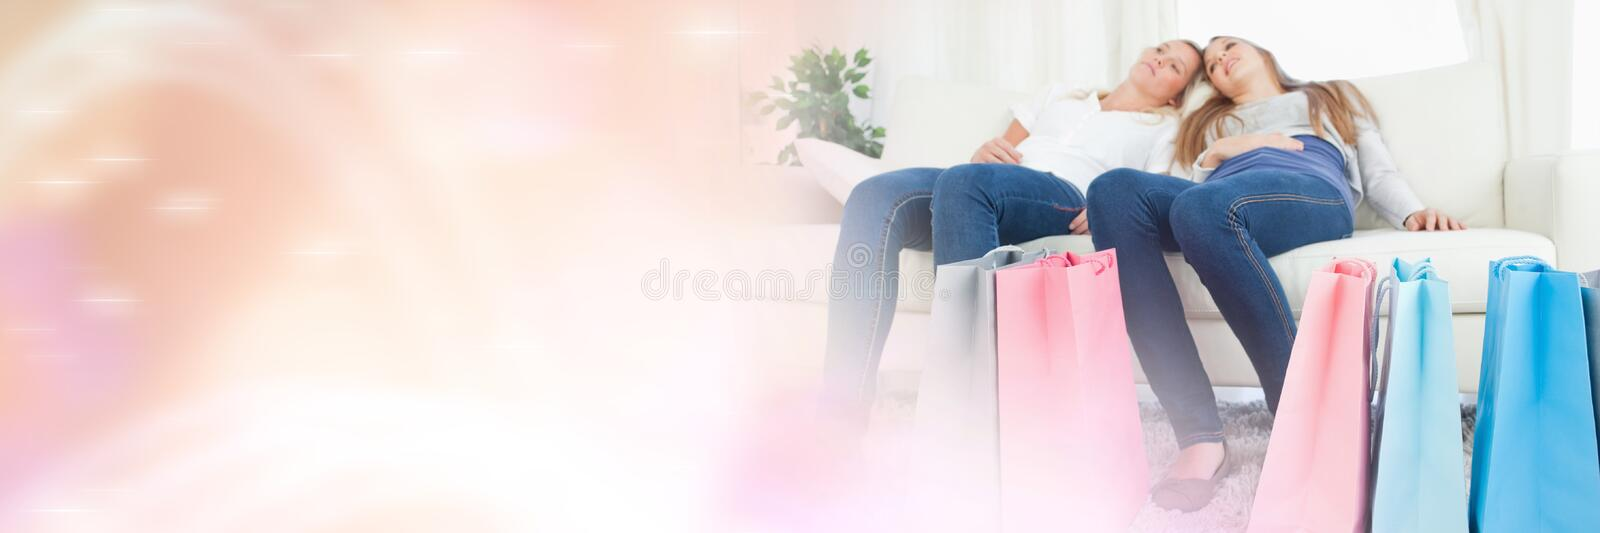 Woman friends at home with shopping bags and sparkling transition stock photo